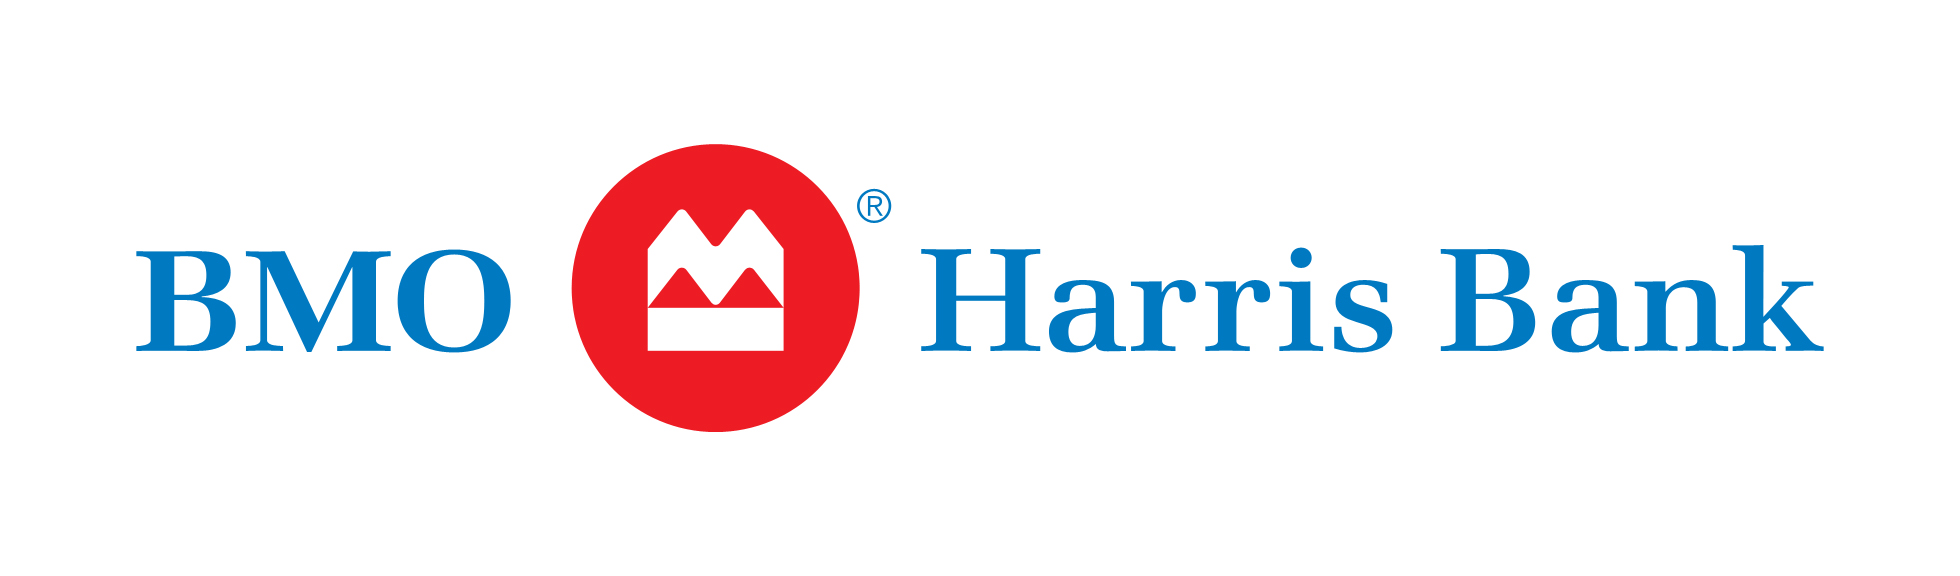 BMO Harris Bank - We're here to help.™